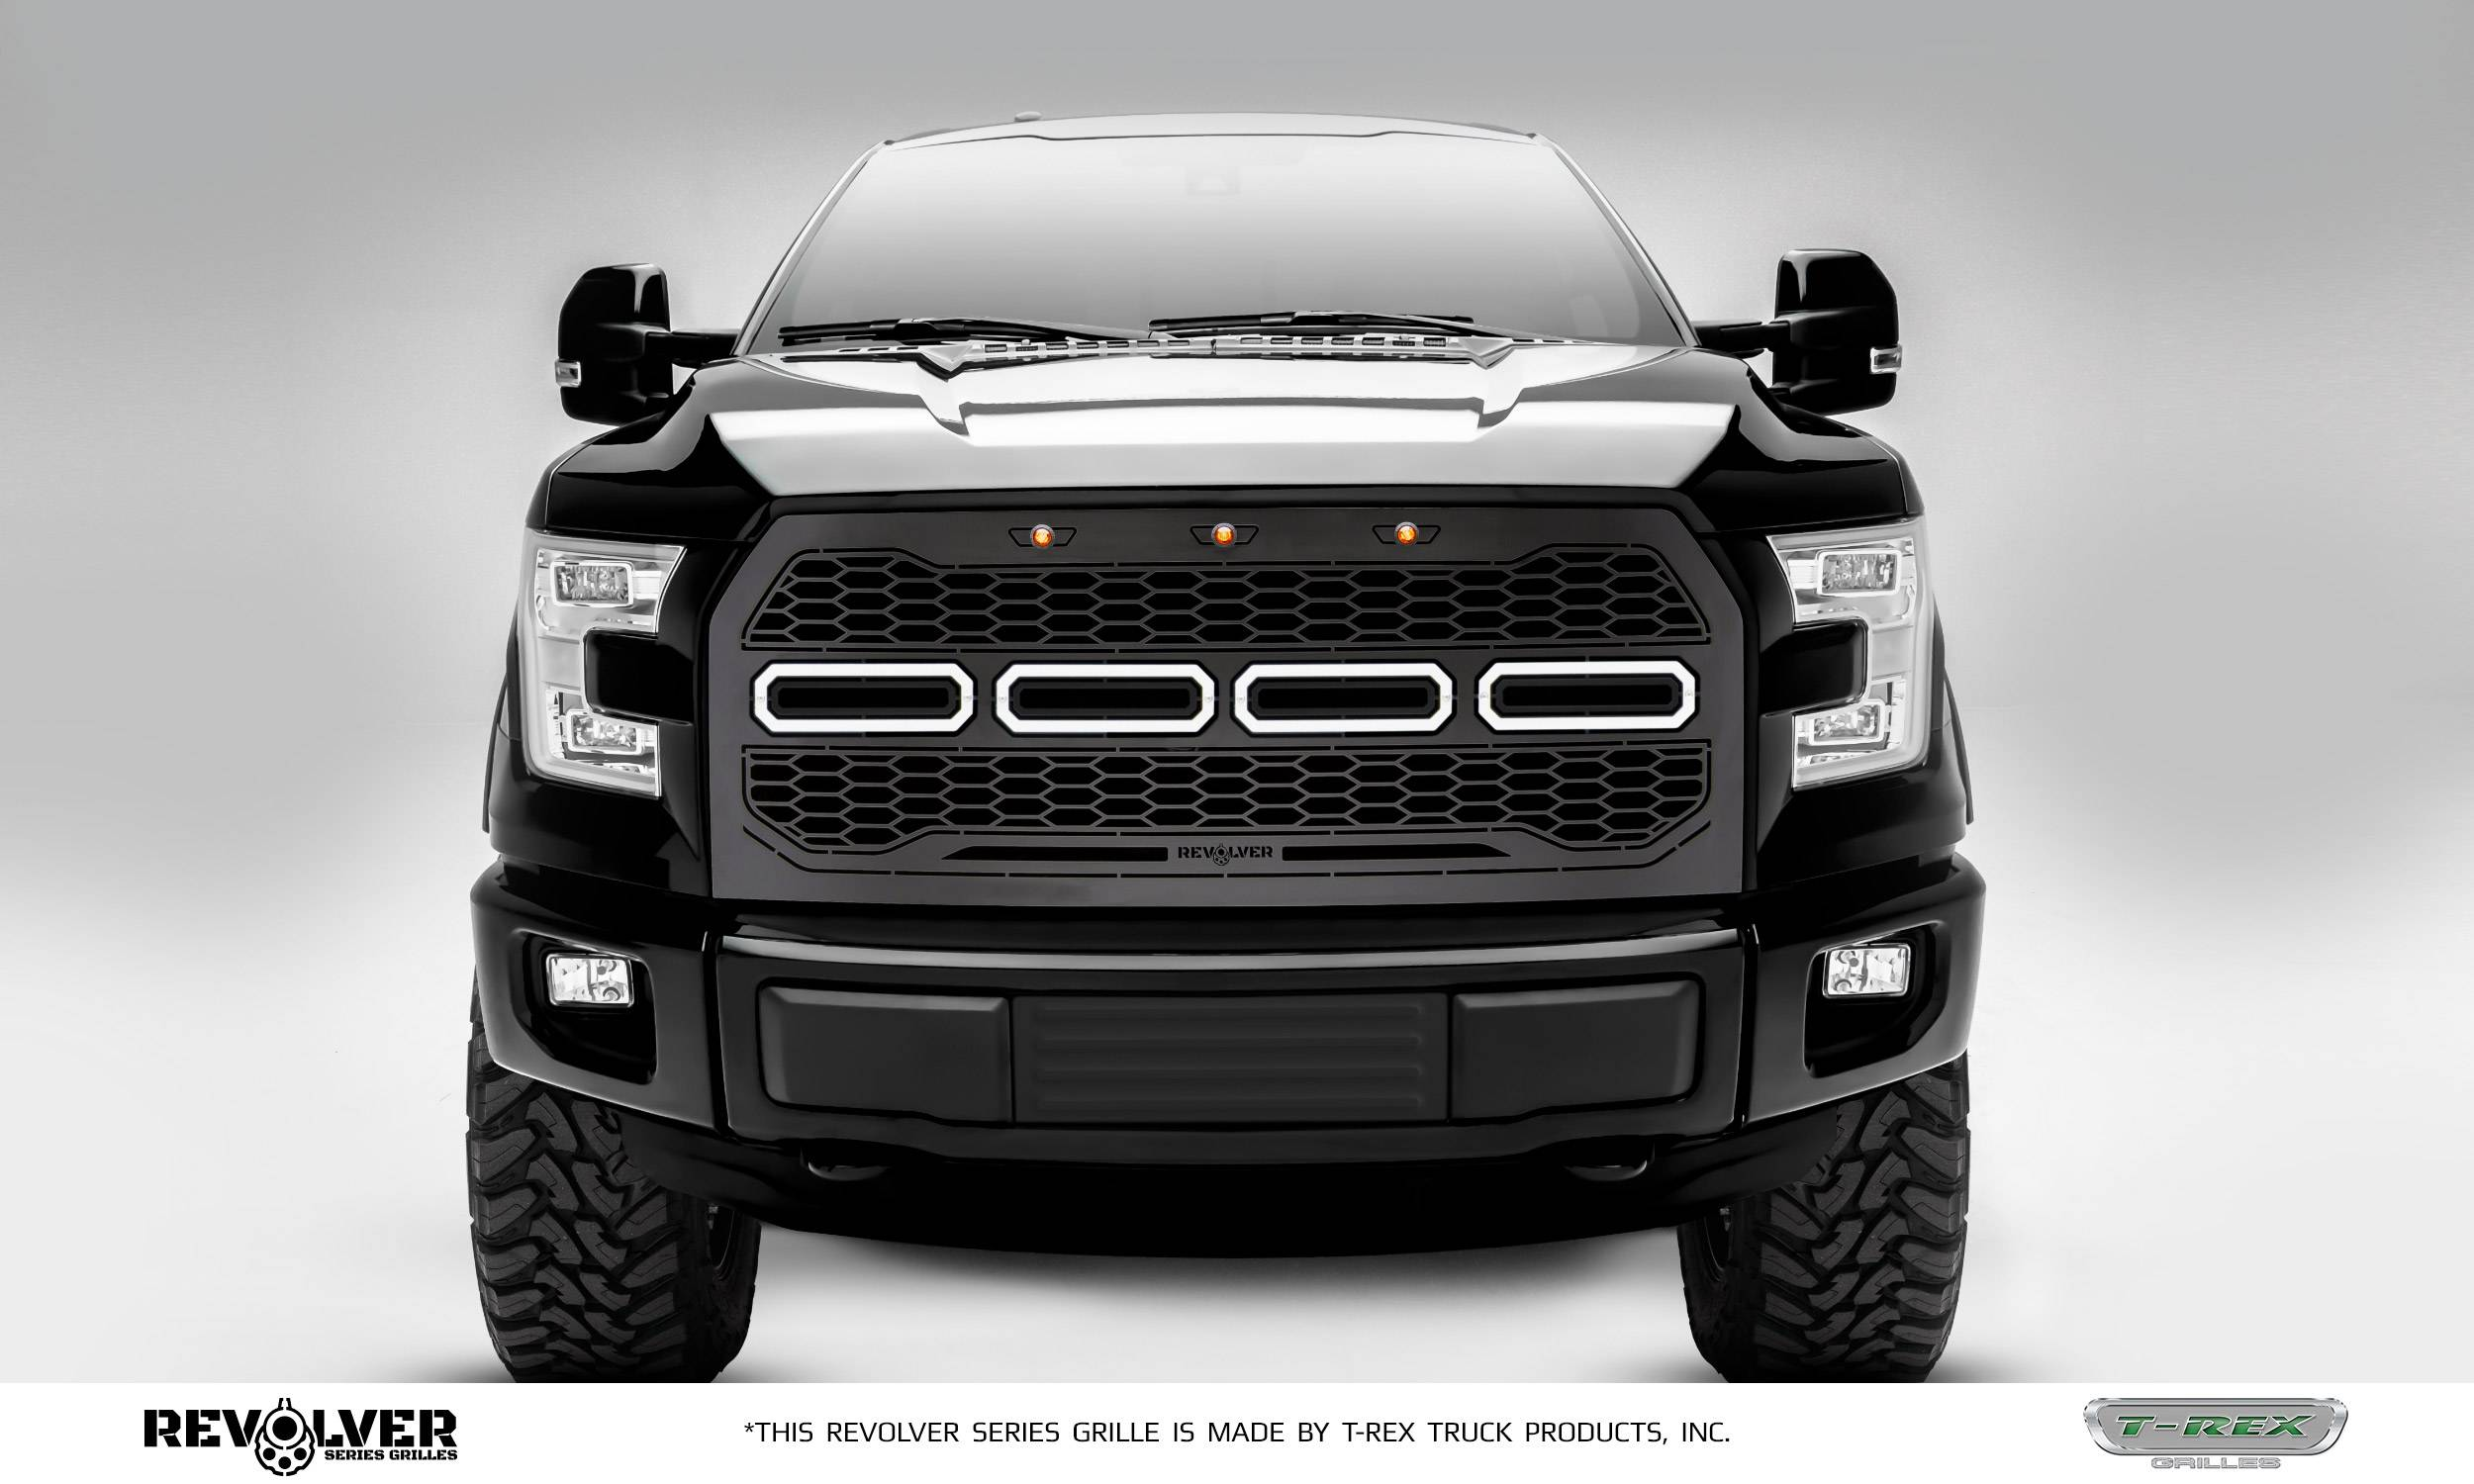 T-REX Grilles - T-REX Ford F-150 - Revolver Series - w/o Forward Facing Camera - Main Replacement - Grille - Part # 6515751